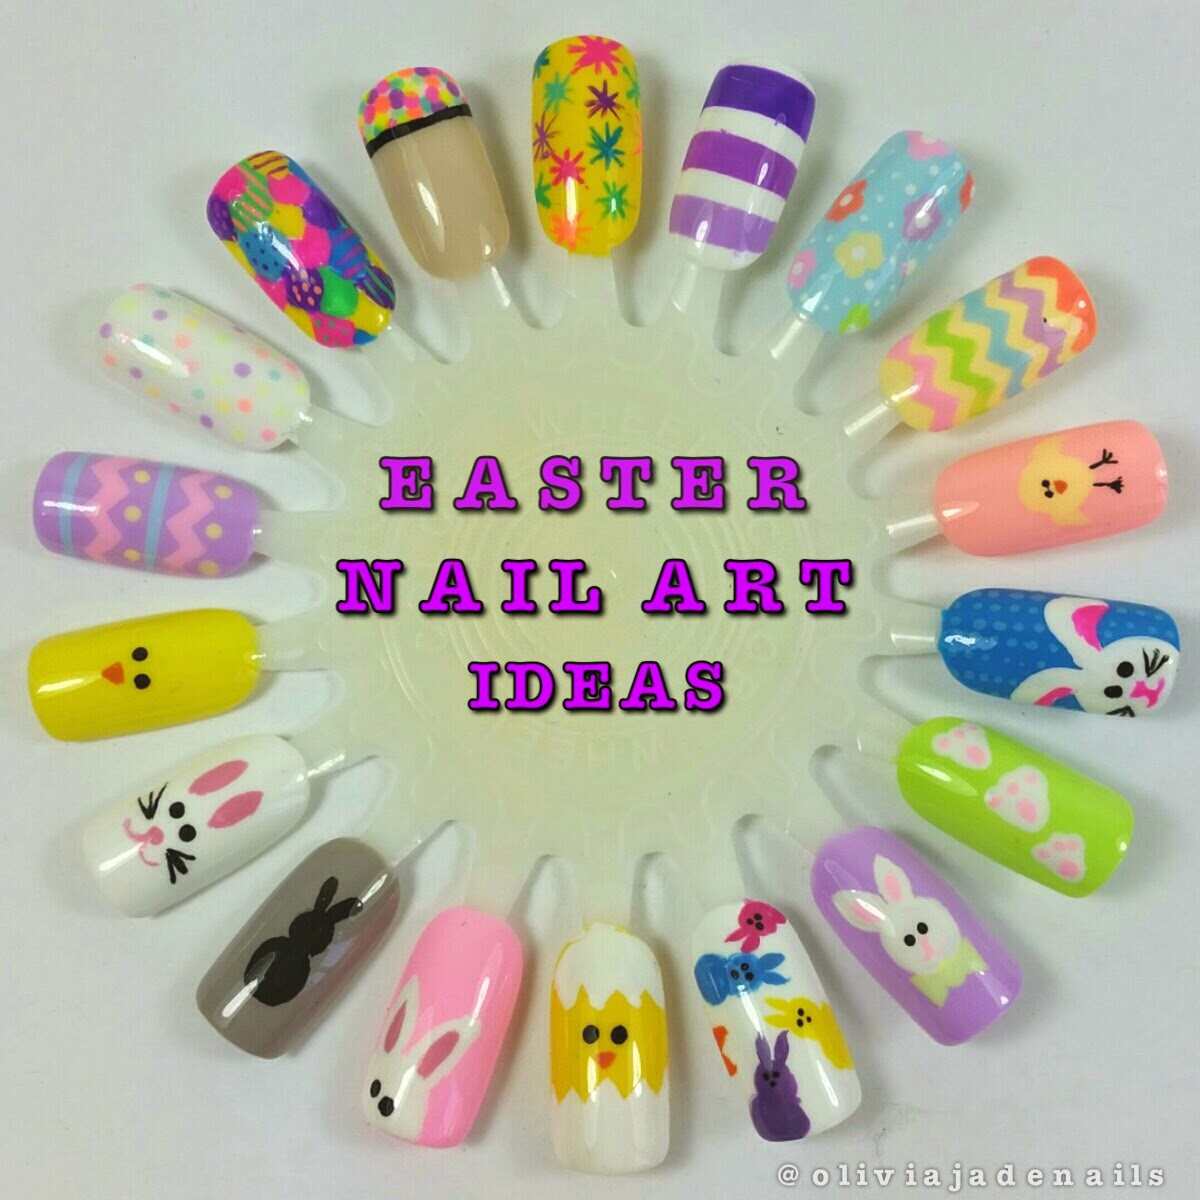 Baby ... - Olivia Jade Nails: Easter Nail Art Ideas